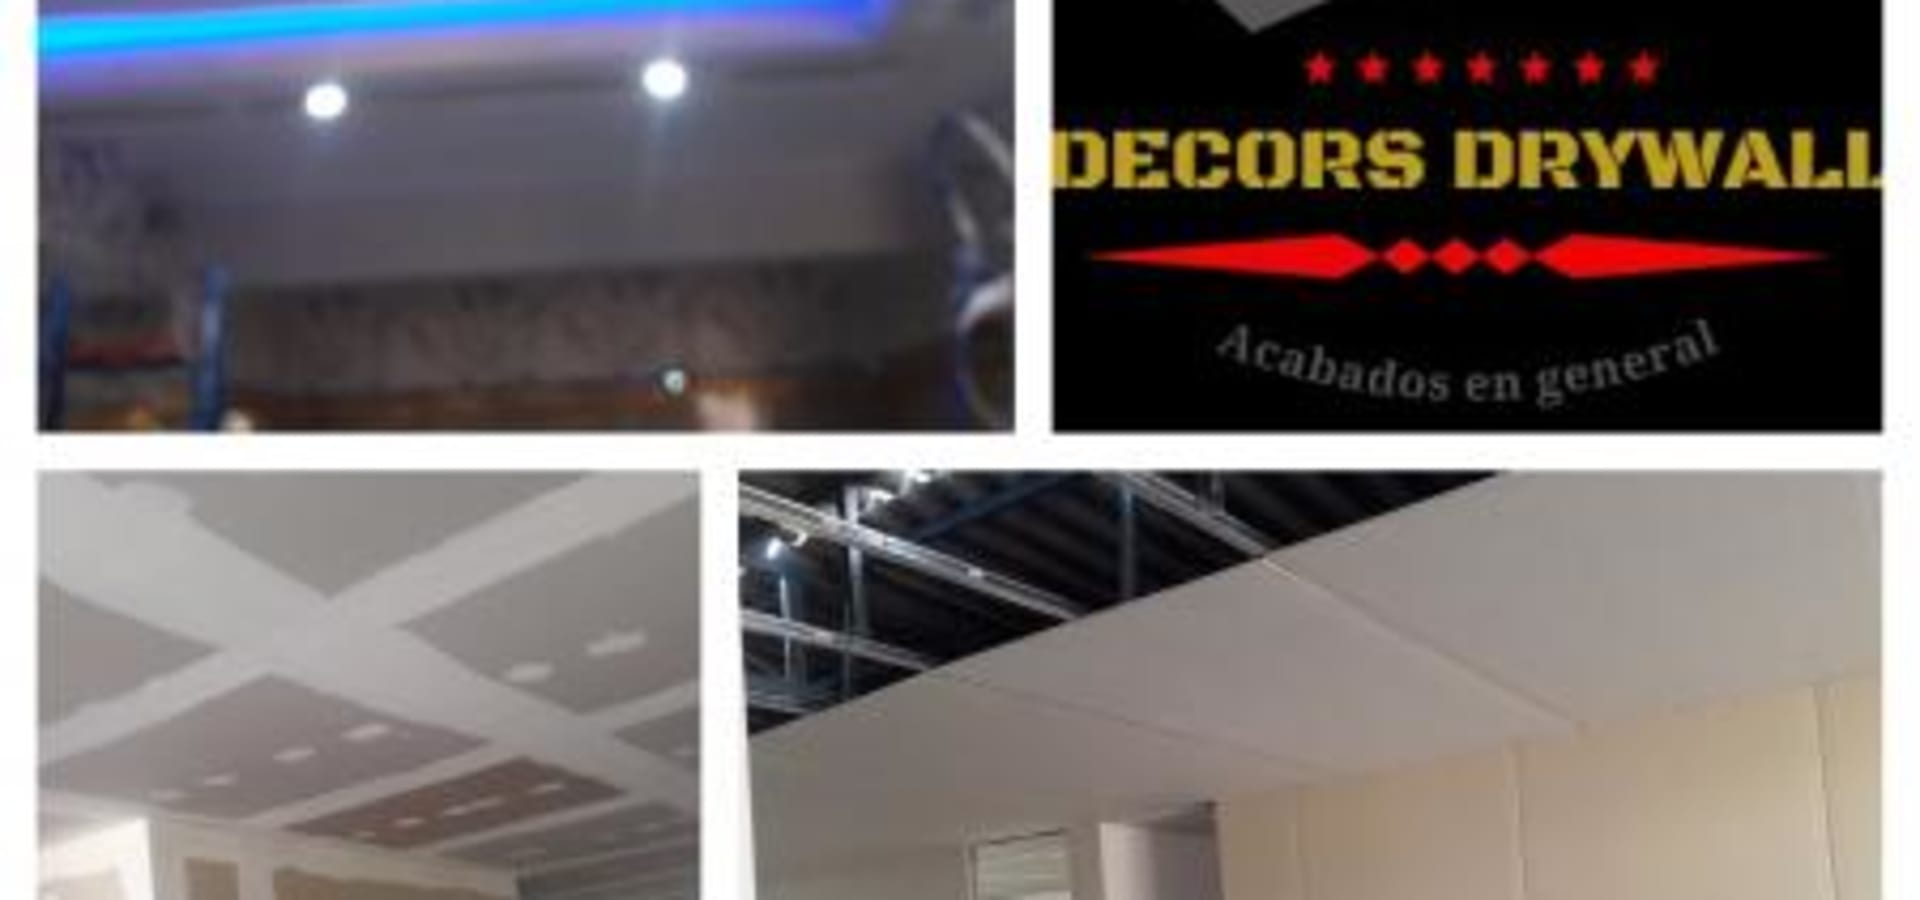 decors drywall